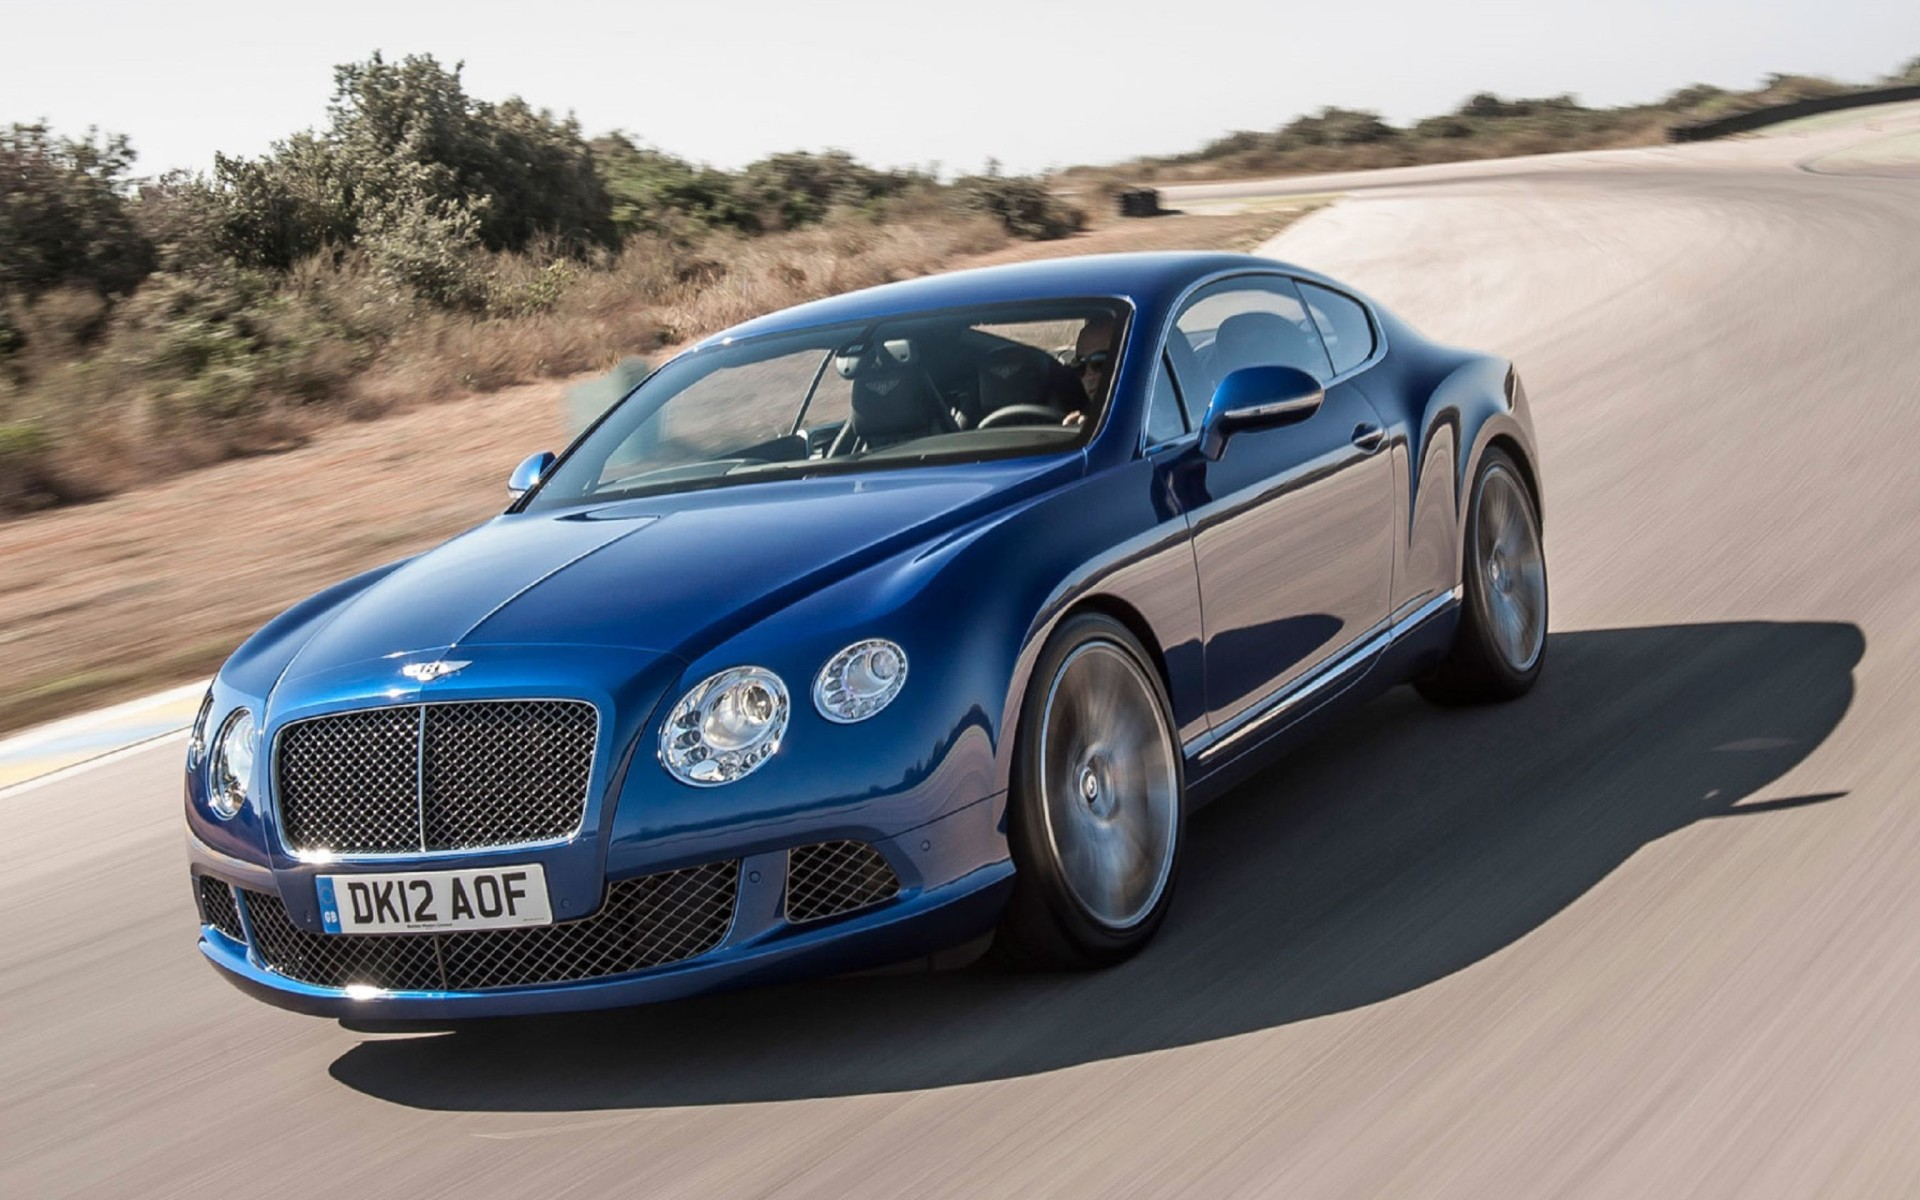 2015 Bentley Continental GT V8 S Blue Color  Wallpaper